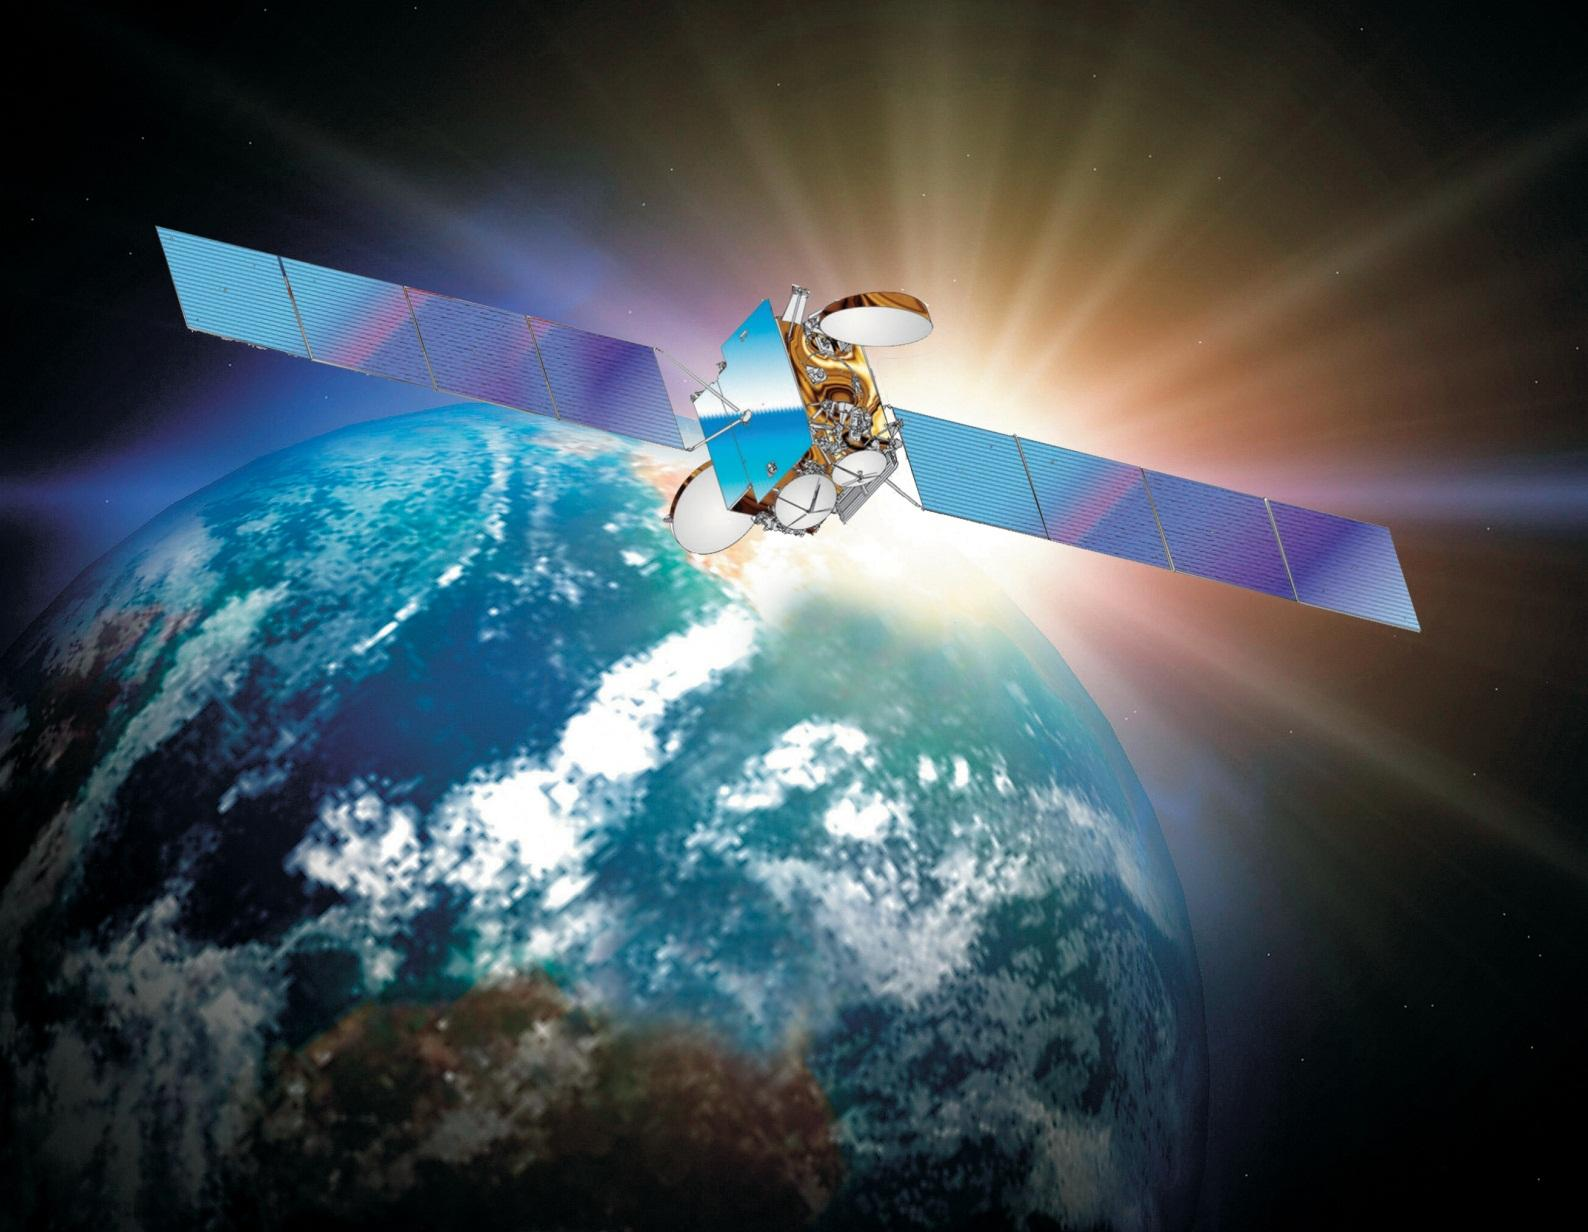 The Thaicom 5 satellite, constructed by Thales Alenia Space, is currently providing telecommunications services for the Asia-Pacific region - Thalesgroup